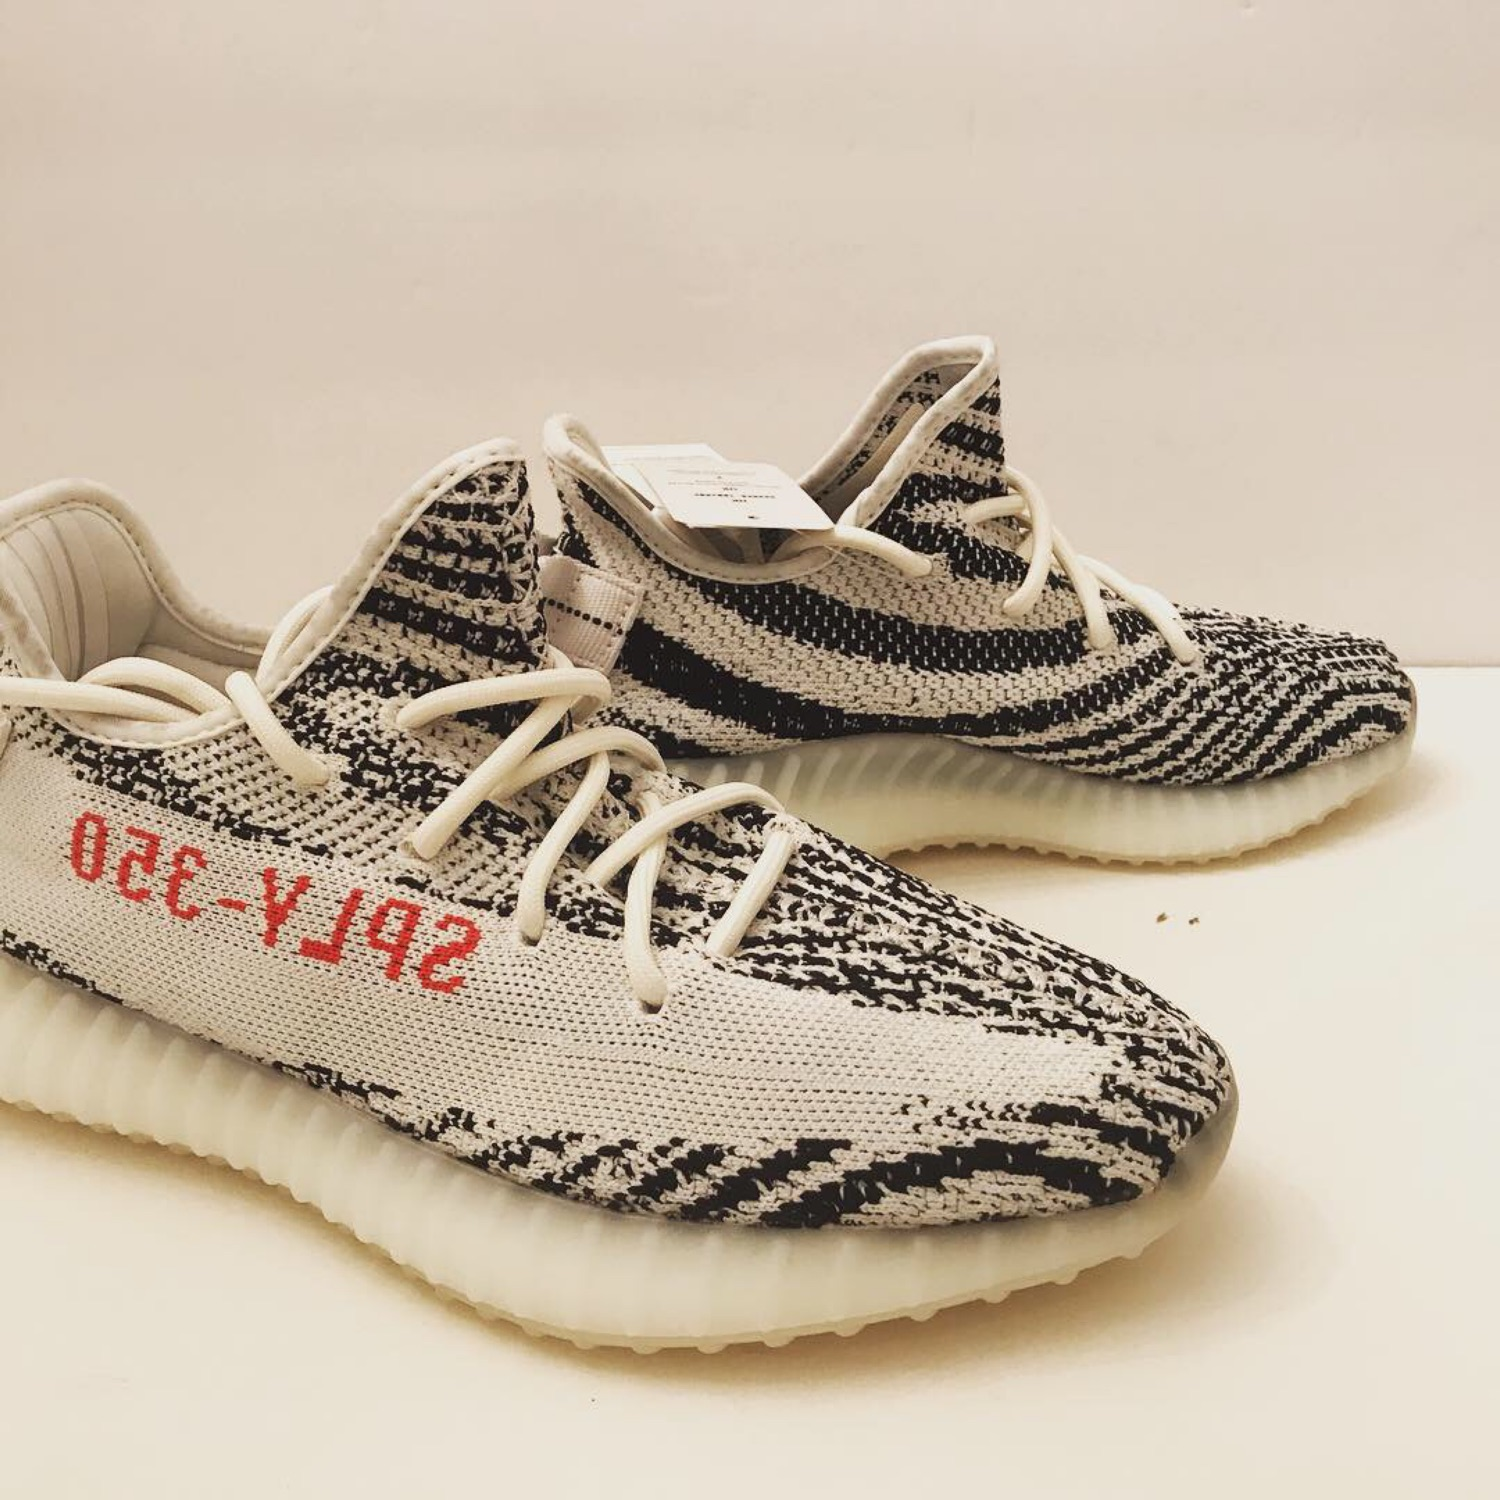 new product 25bed 4df2b Yeezy Boost 350 V2 Zebra 2018 Men's 8